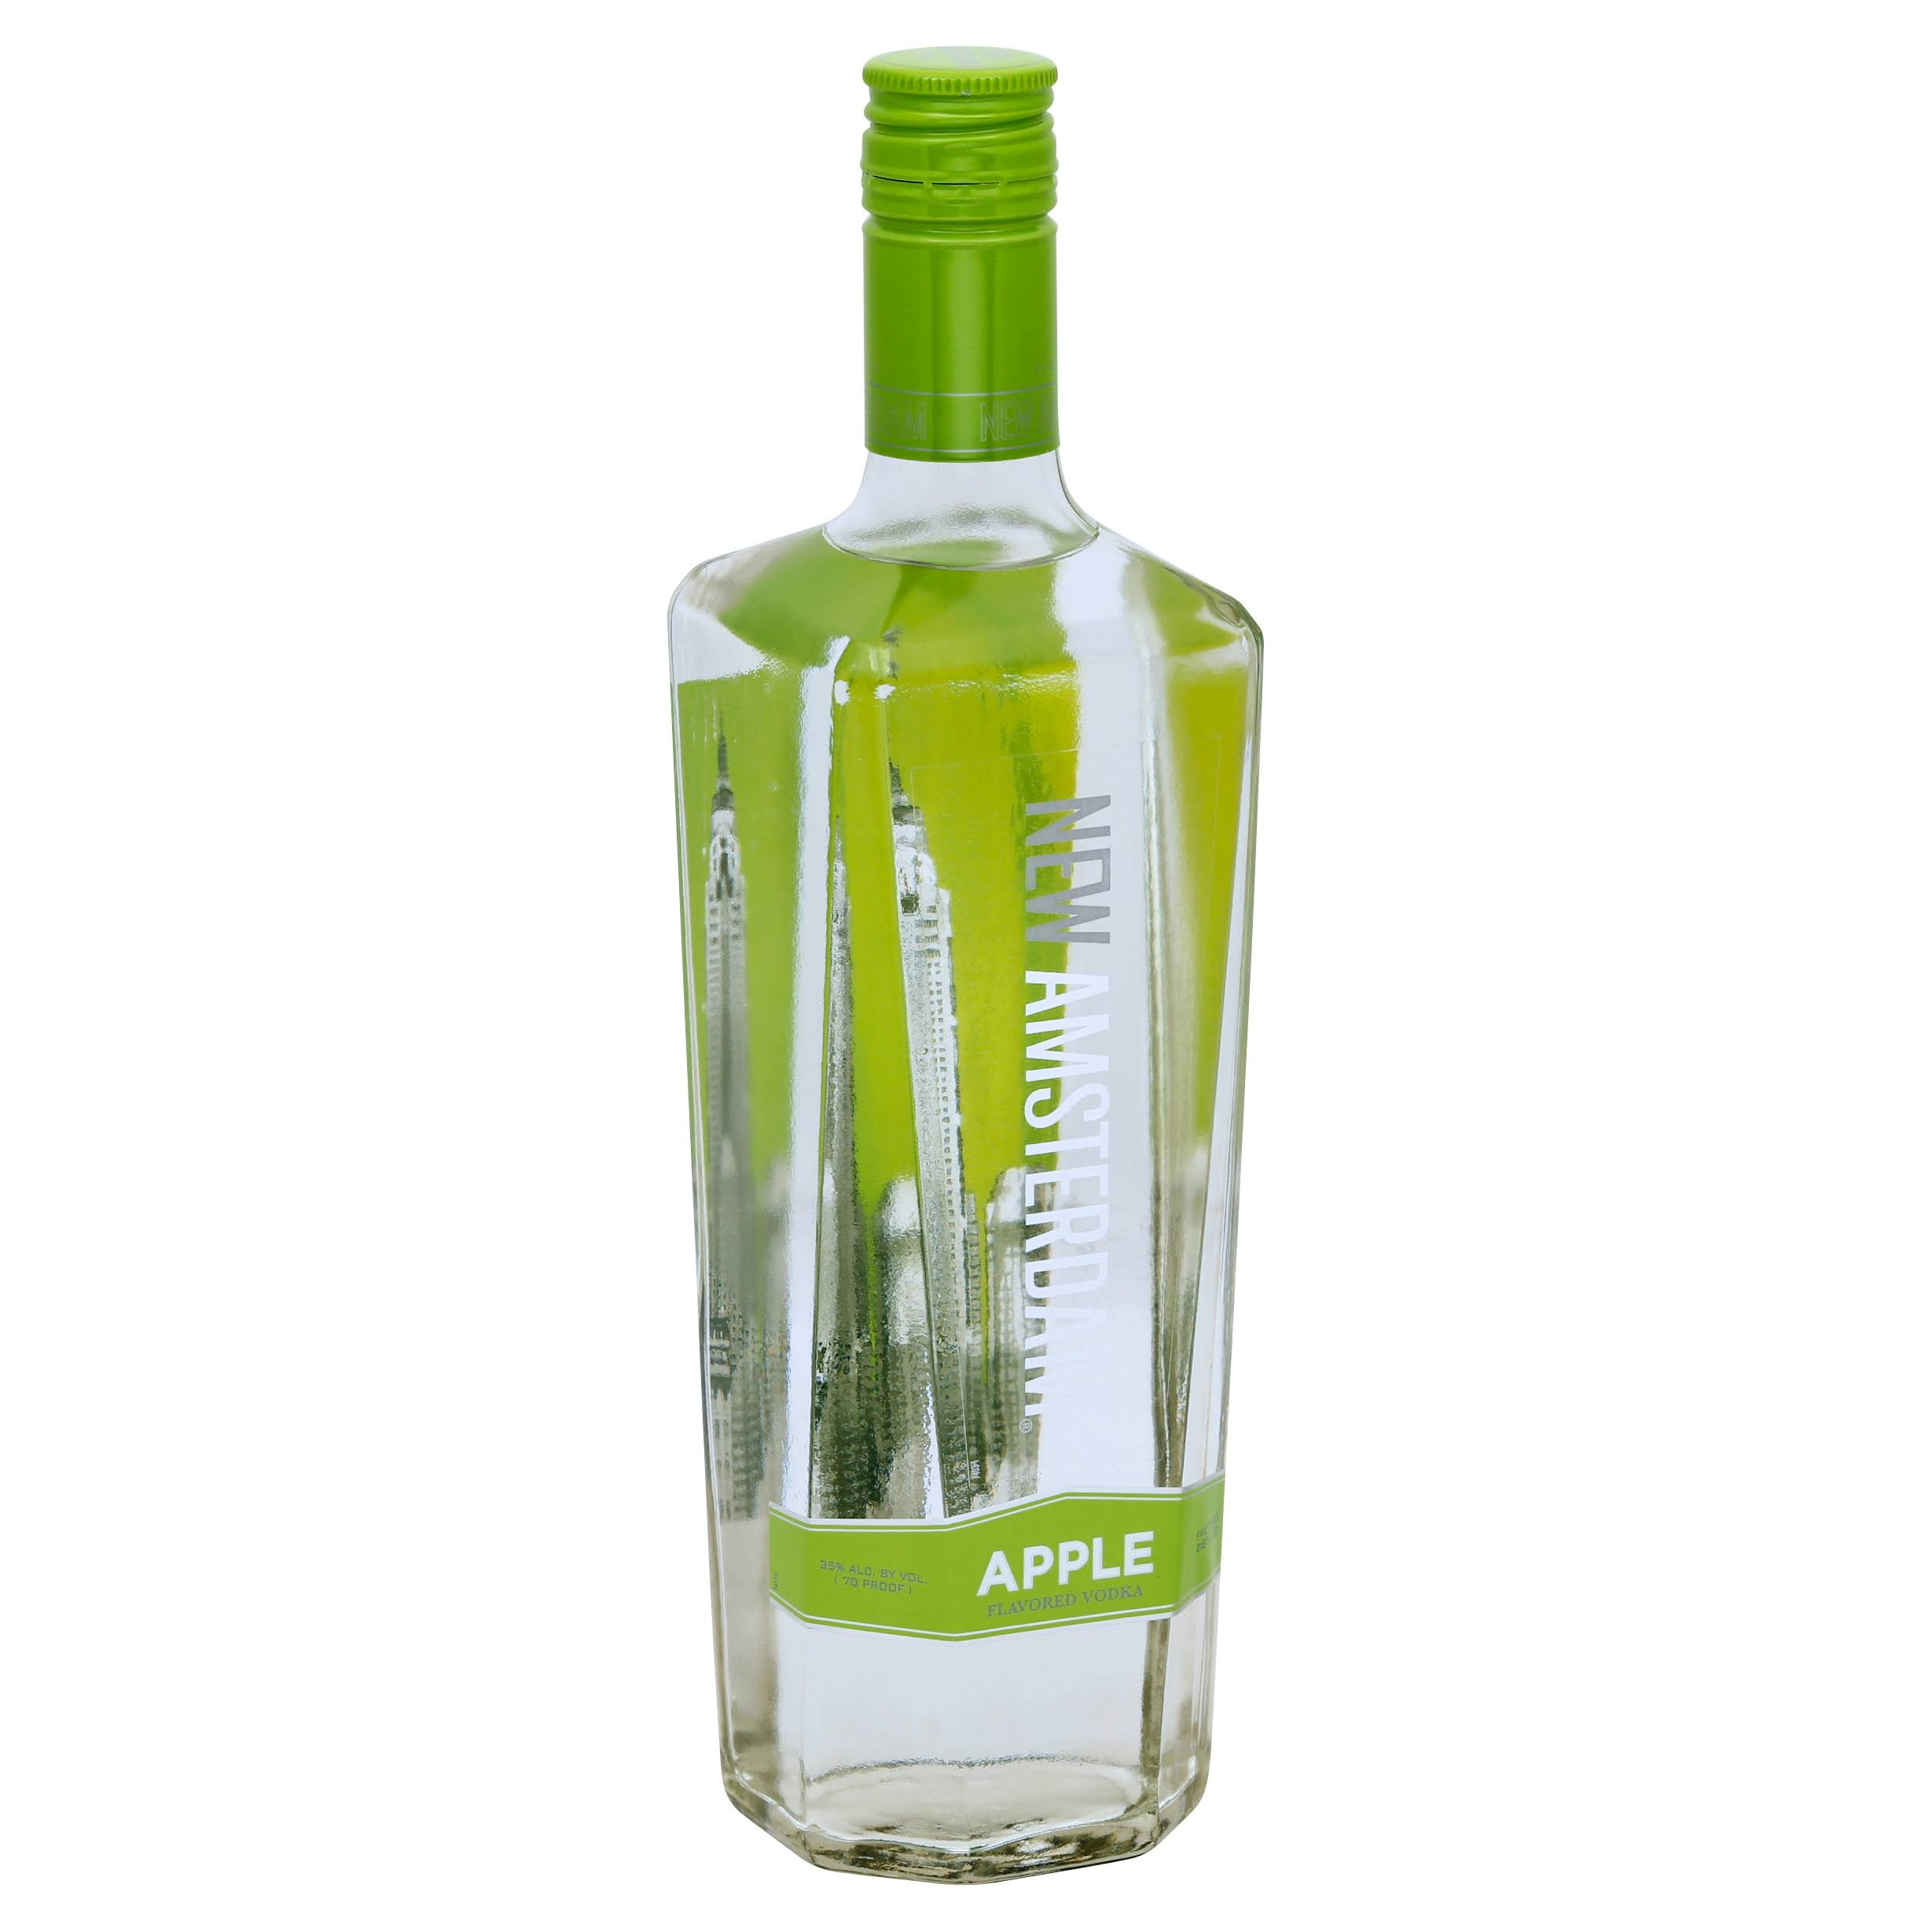 New Amsterdam Apple Vodka - 750 ml bottle